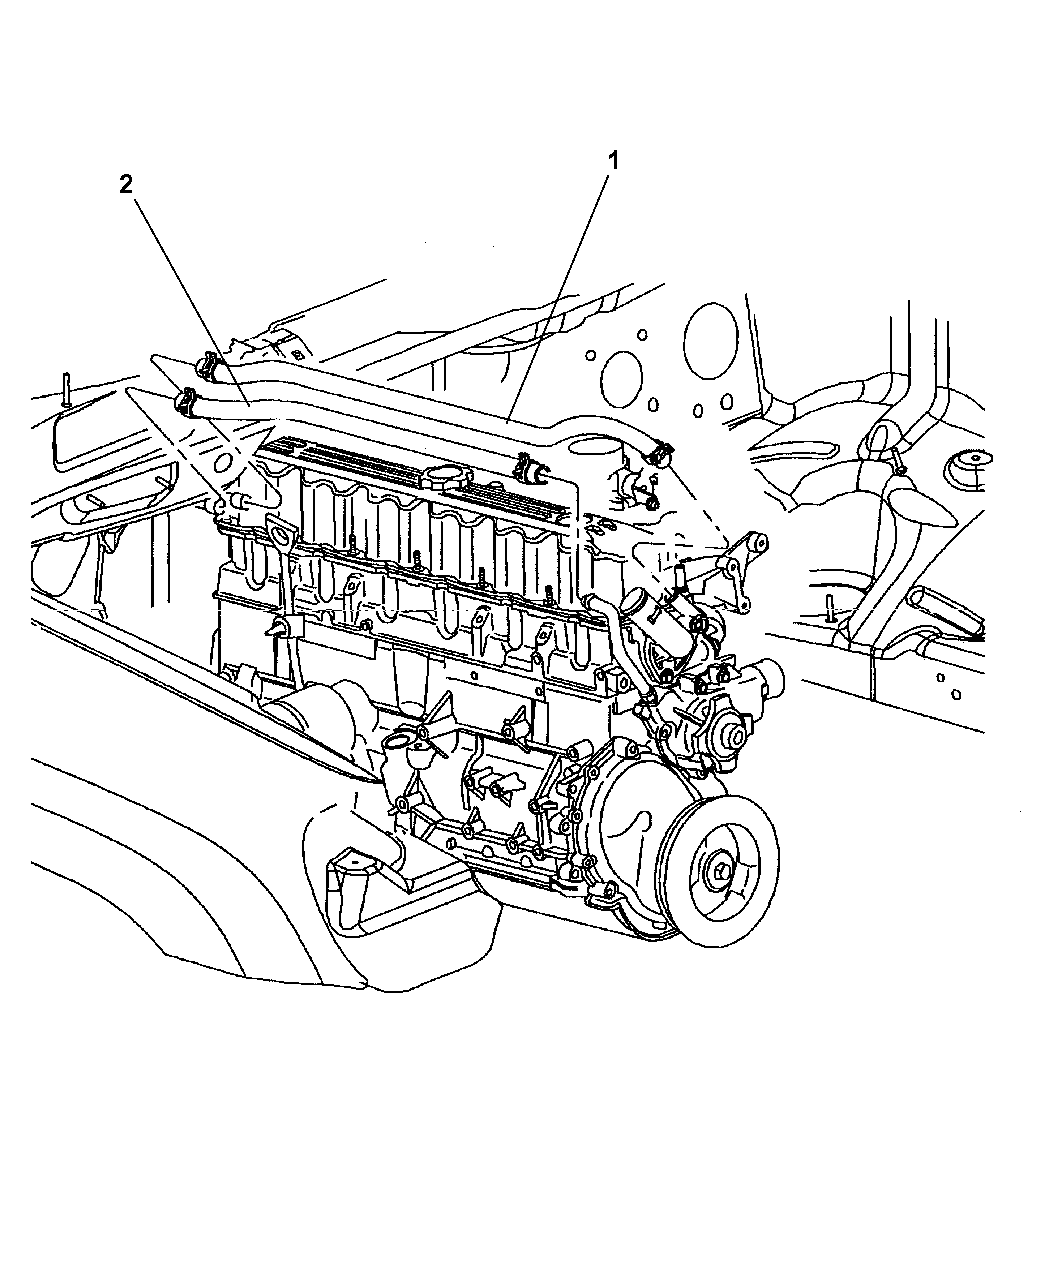 2003 jeep grand cherokee heater hoses - diagram 1